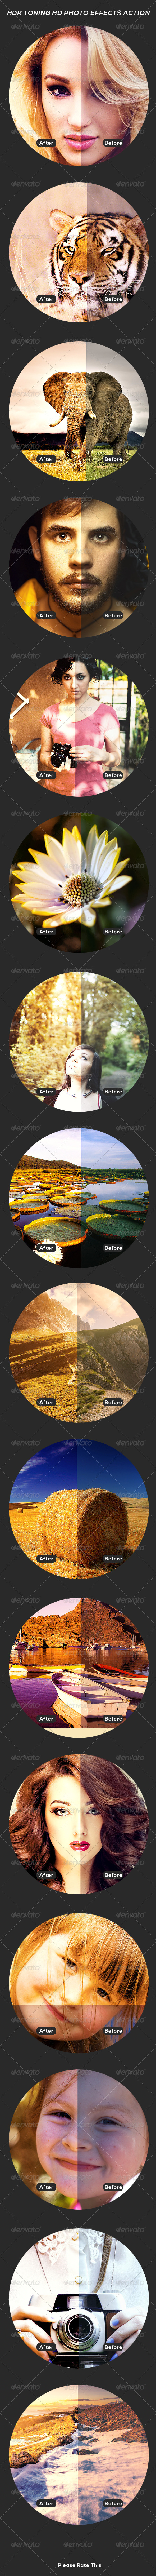 GraphicRiver HDR Toning HD Photo Effects Action 8316770